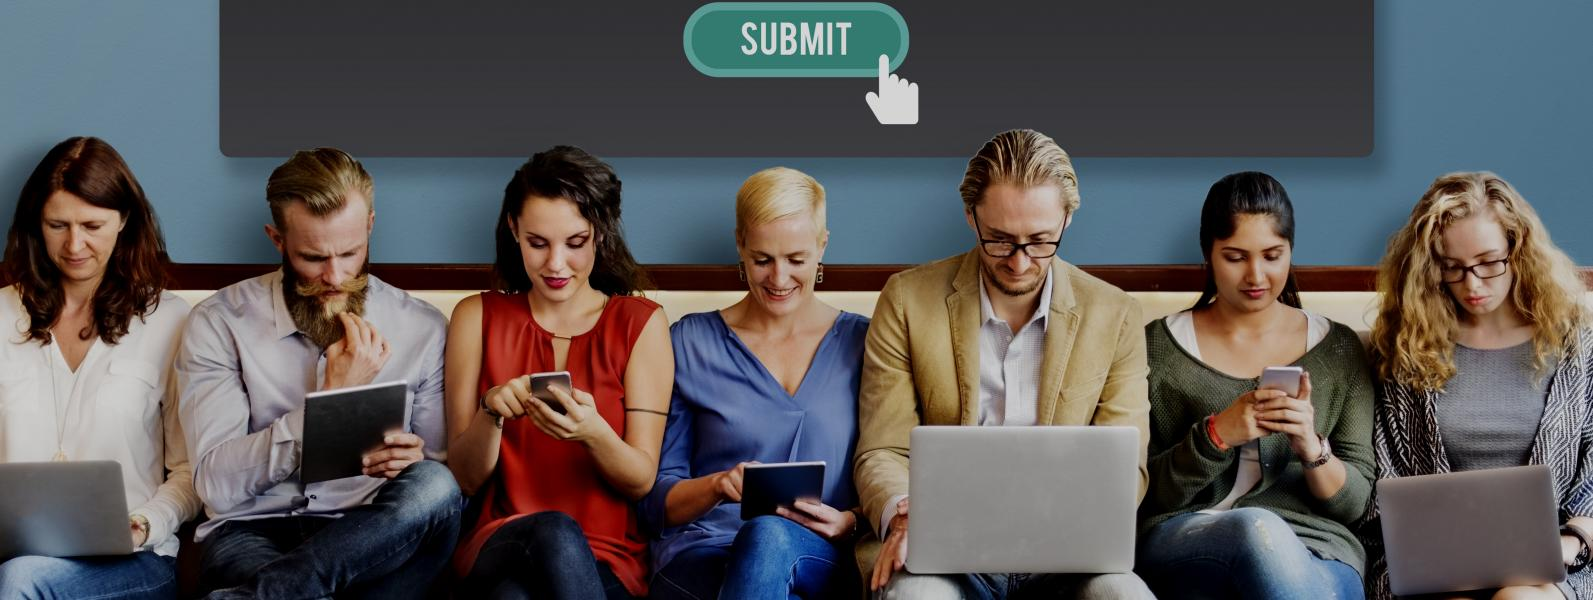 7 people sitting in a row below a sign that says Submit; using their laptops, iPads and phones